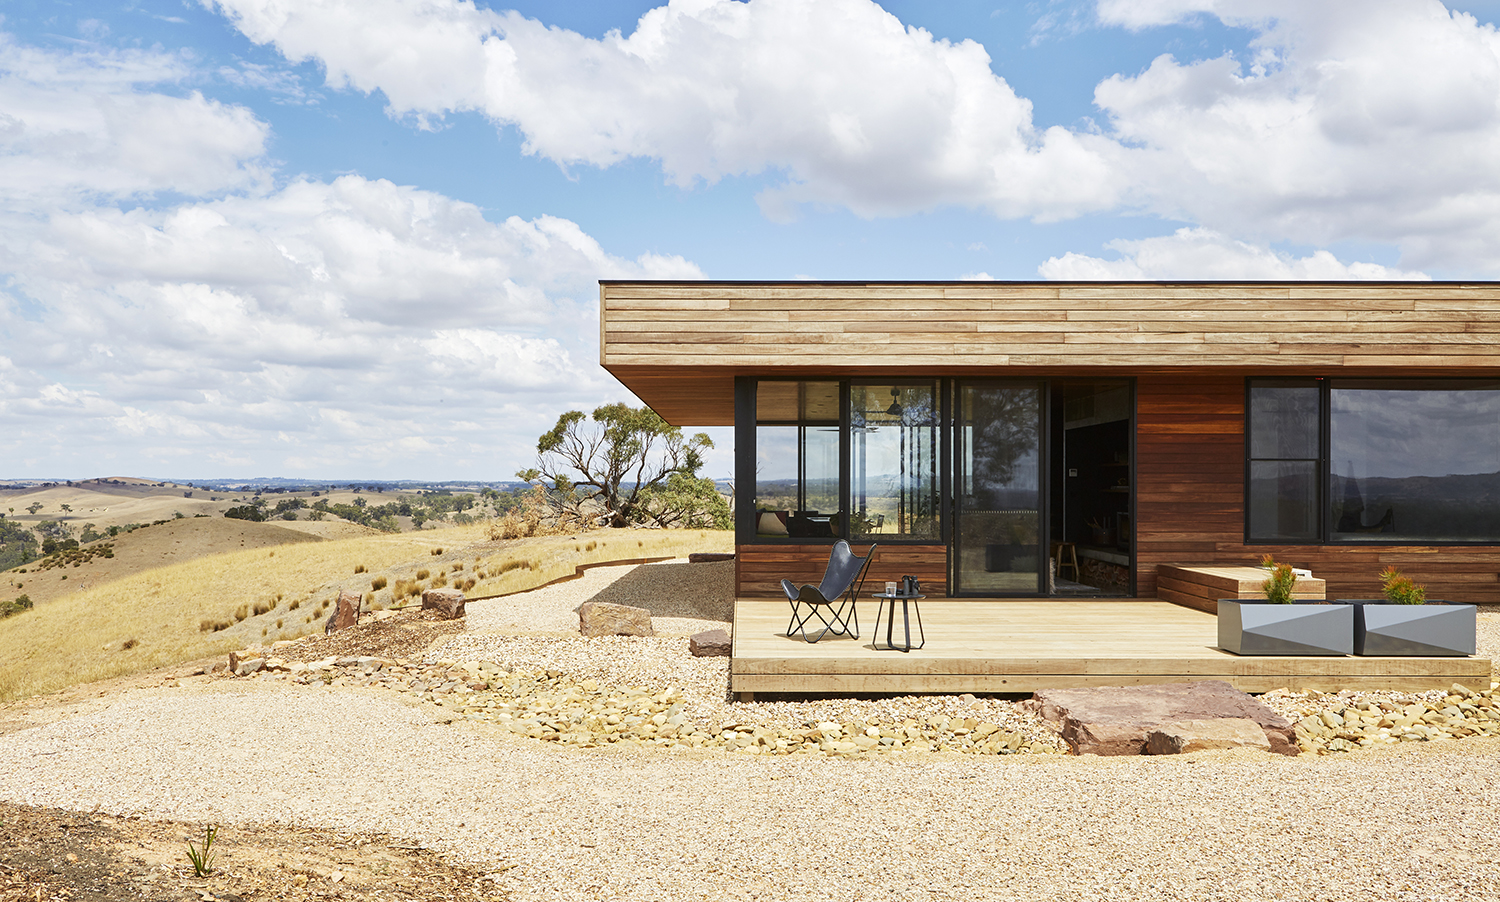 3 @bencalleryarchitect About The Elemental House, An Off Grid Rural Idyll Set High On A Ridge Overlooking The Plains, Valleys And Mountains Of North Central Victoria